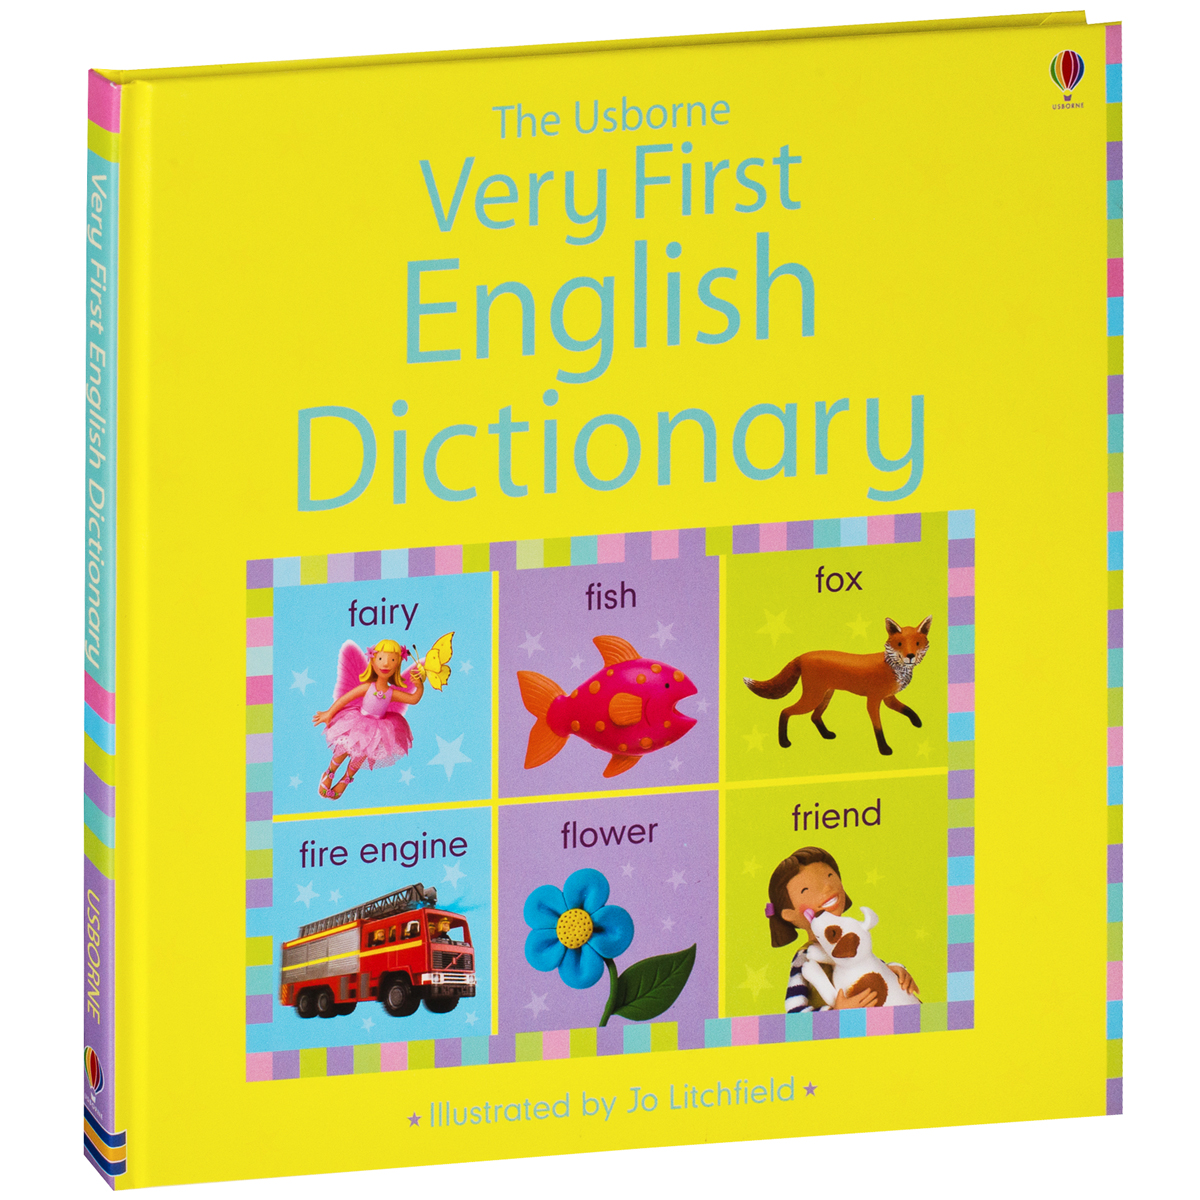 Very First English Dictionary starting over